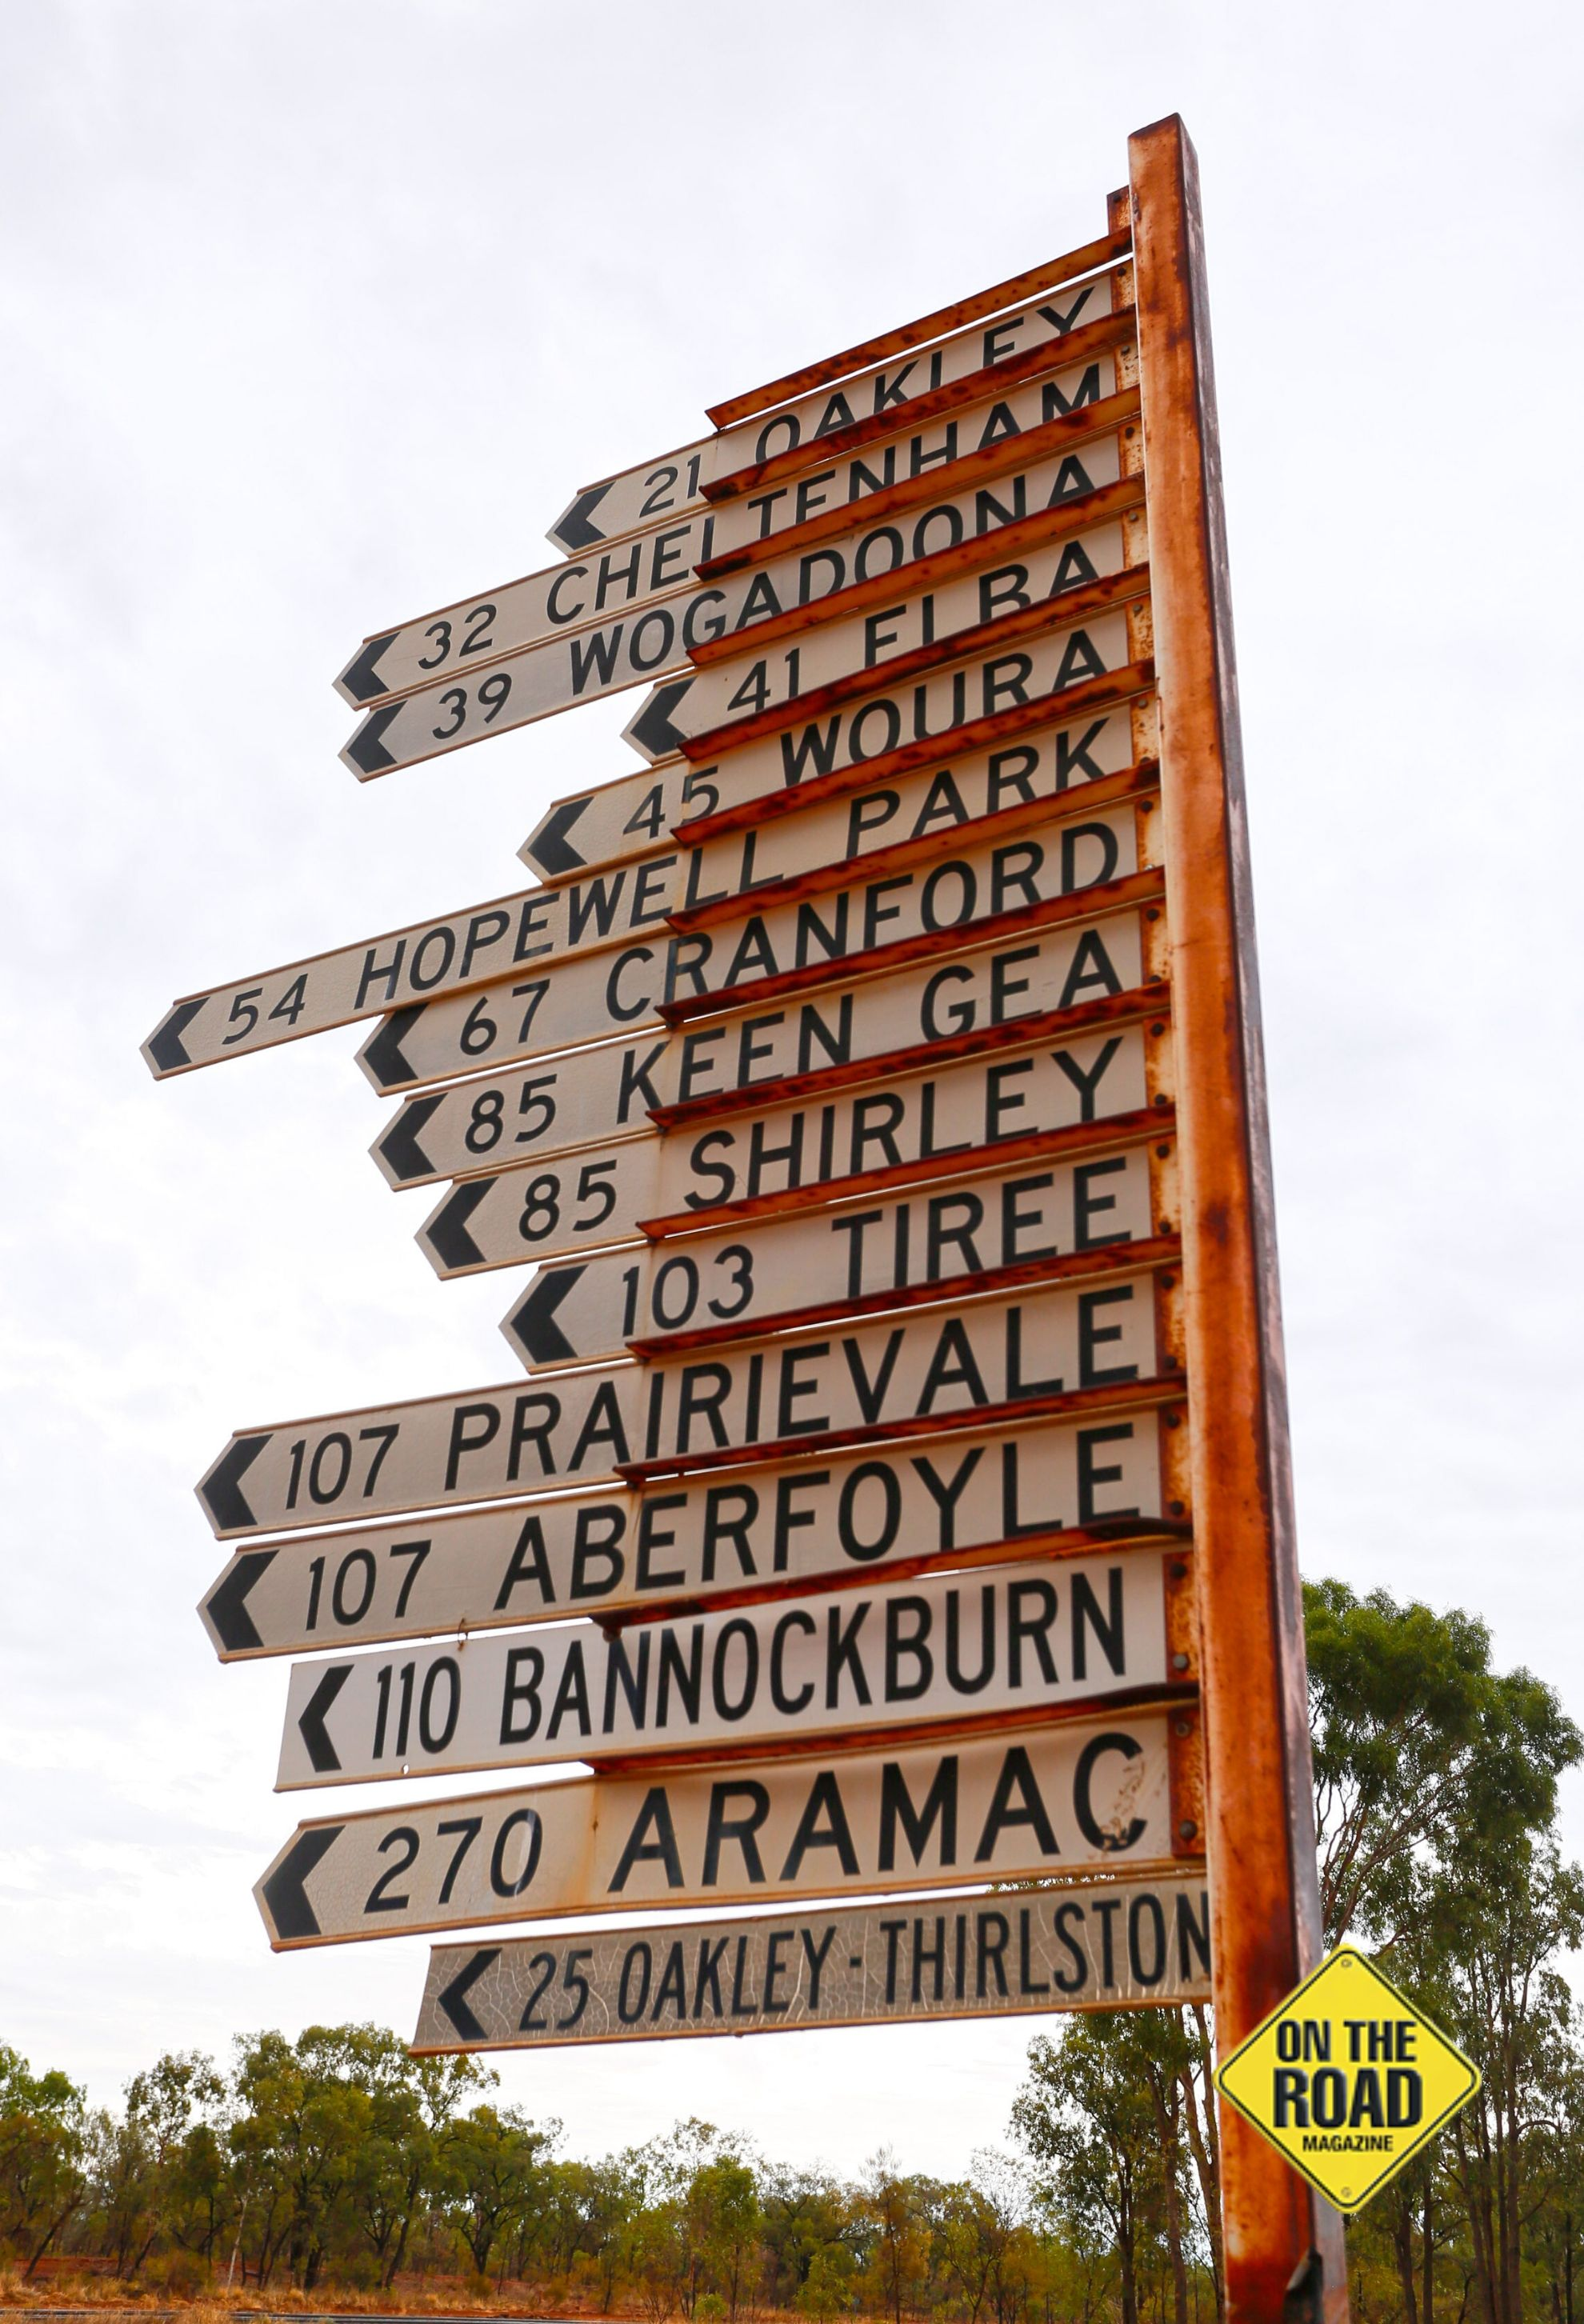 Destinations south of Torrens Creek on the way to Barcaldine.